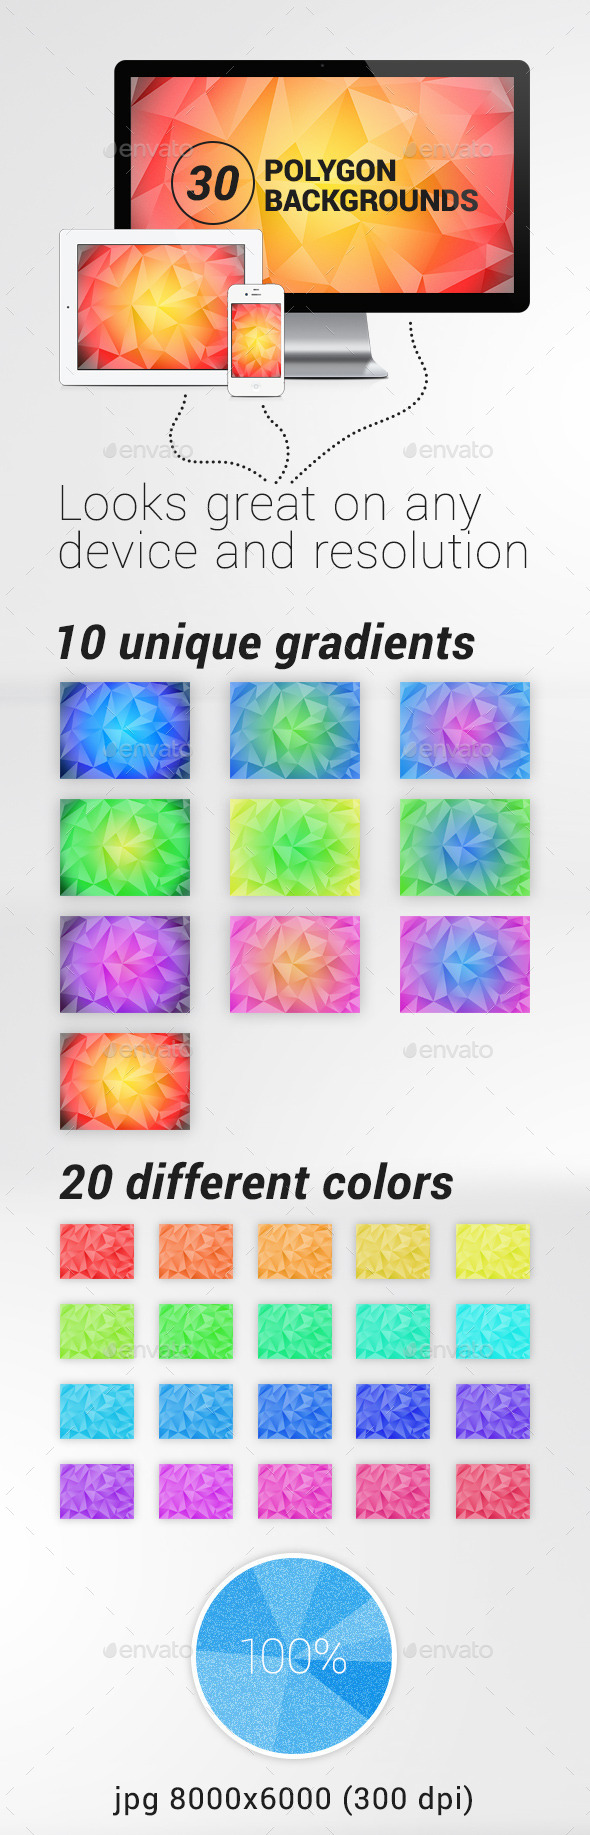 GraphicRiver 30 Polygon Backgrounds 9166184